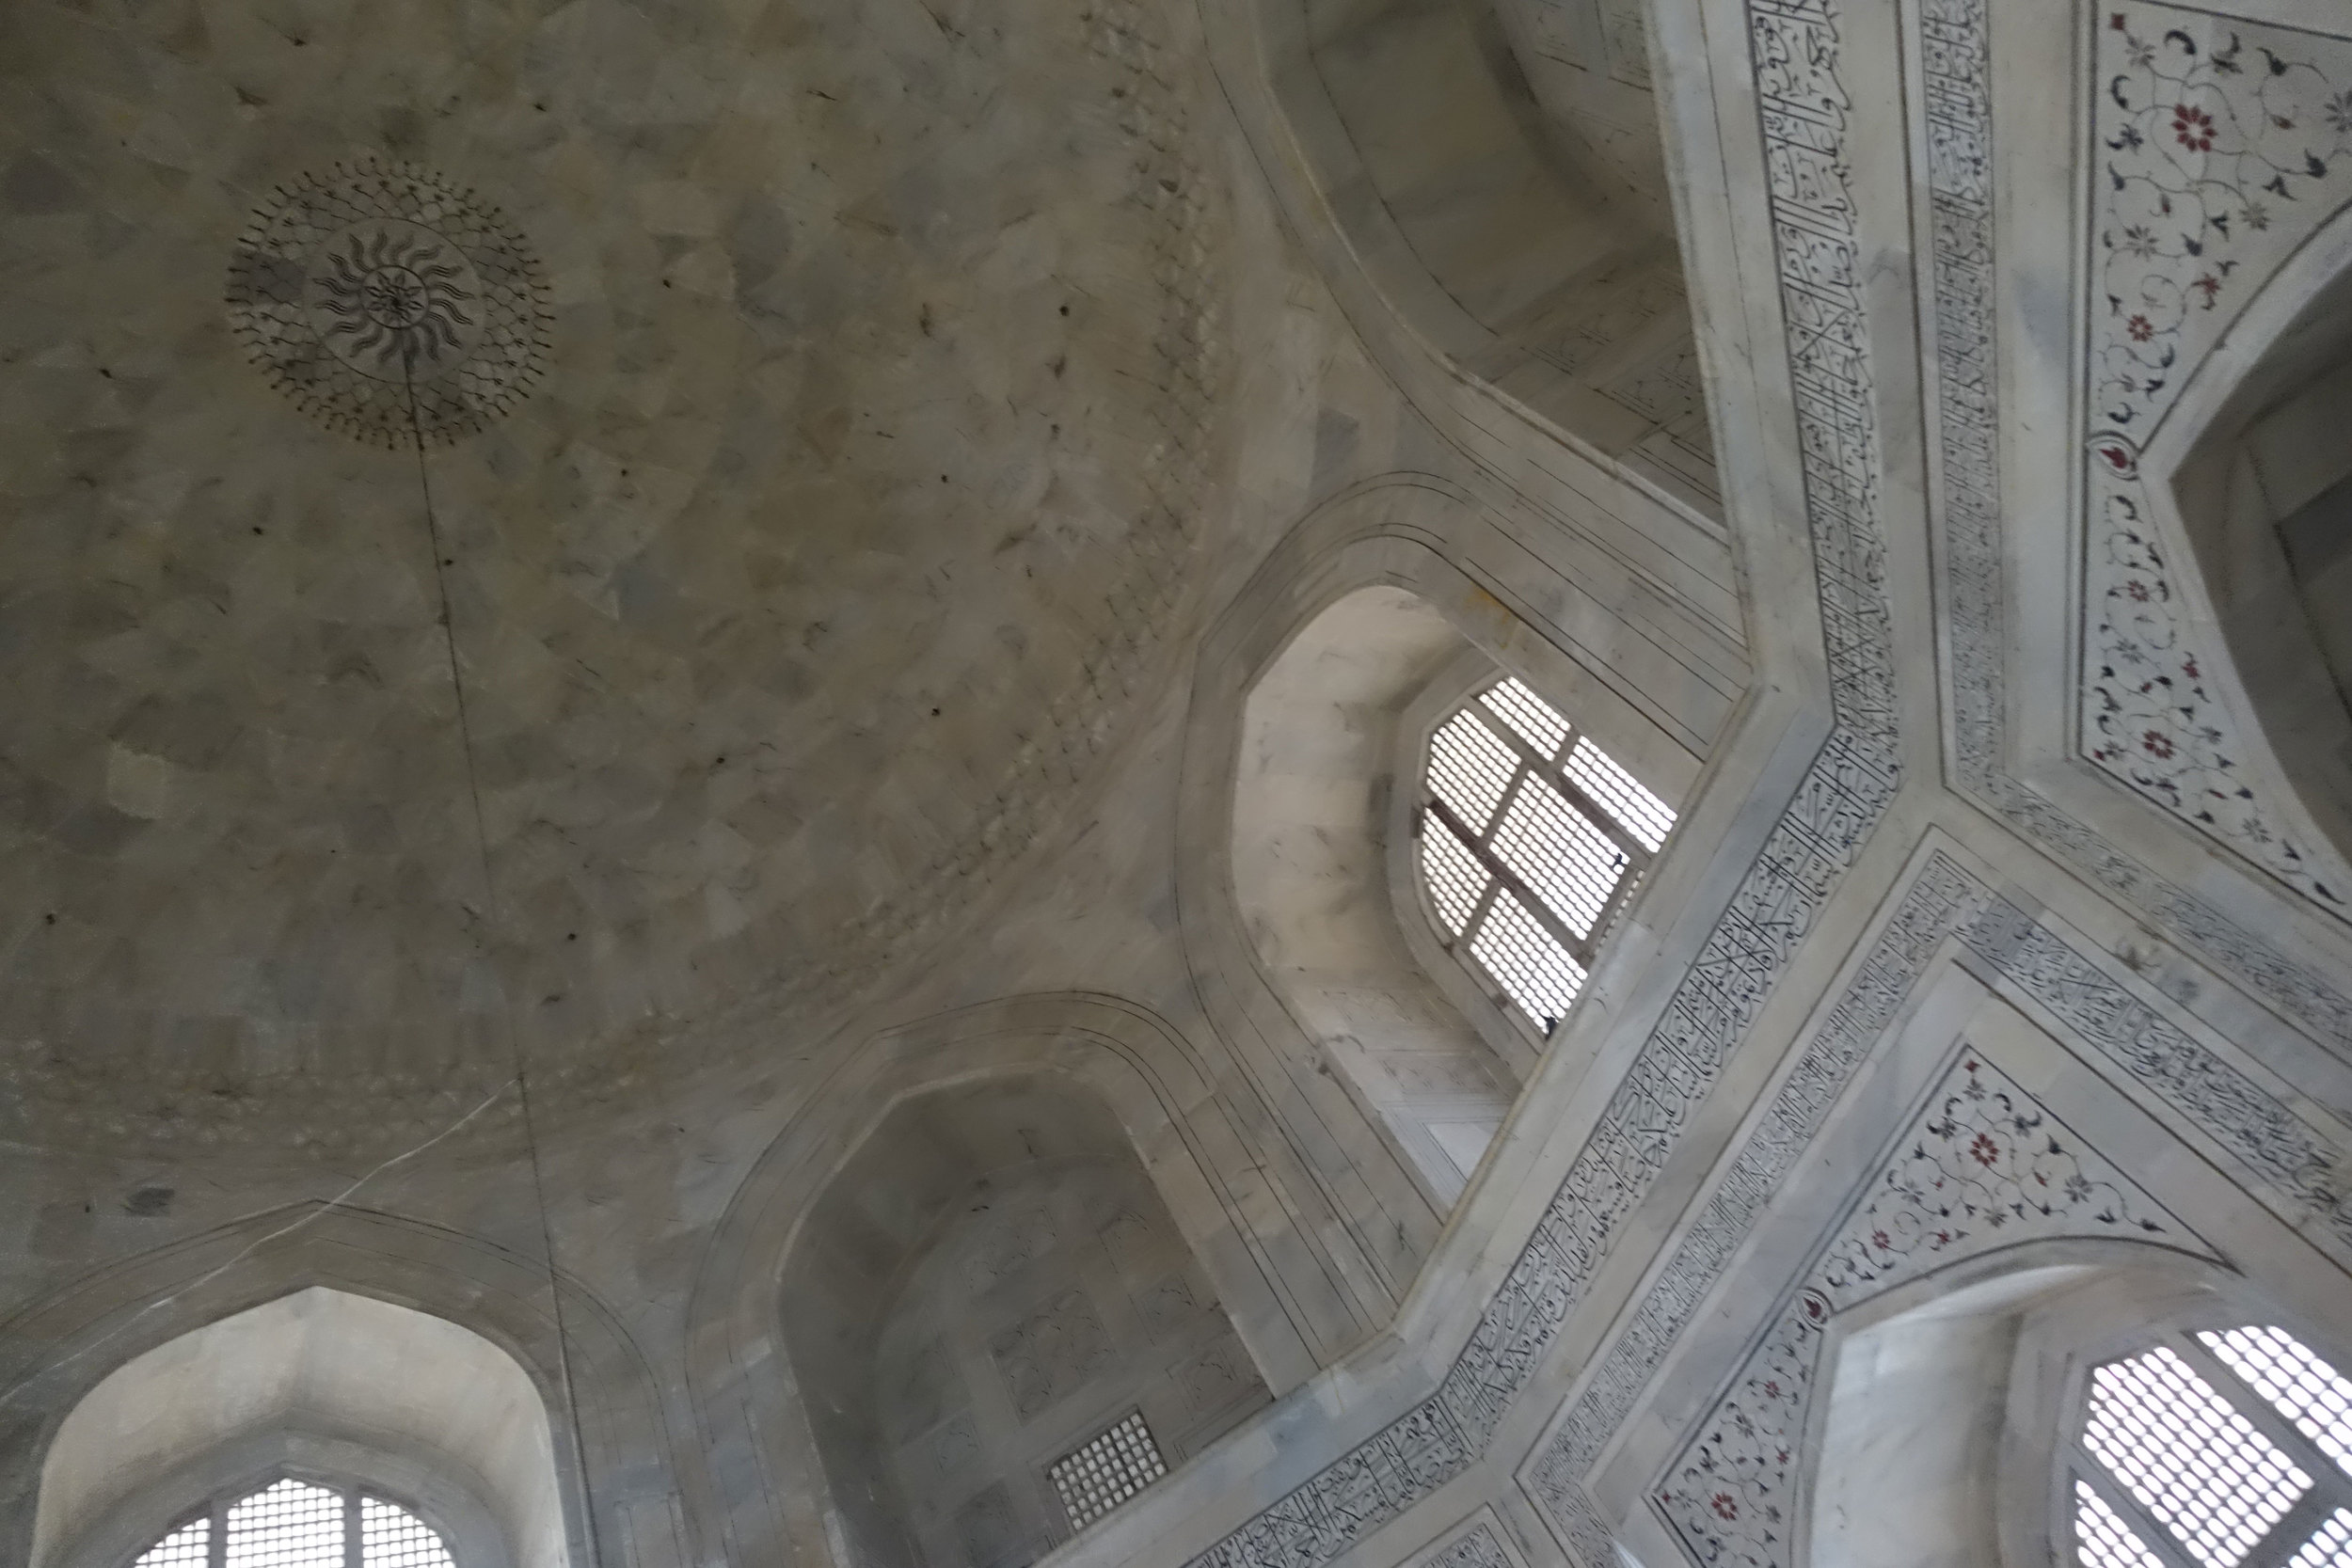 Intricate carvings symmetrical architecture inside the dome